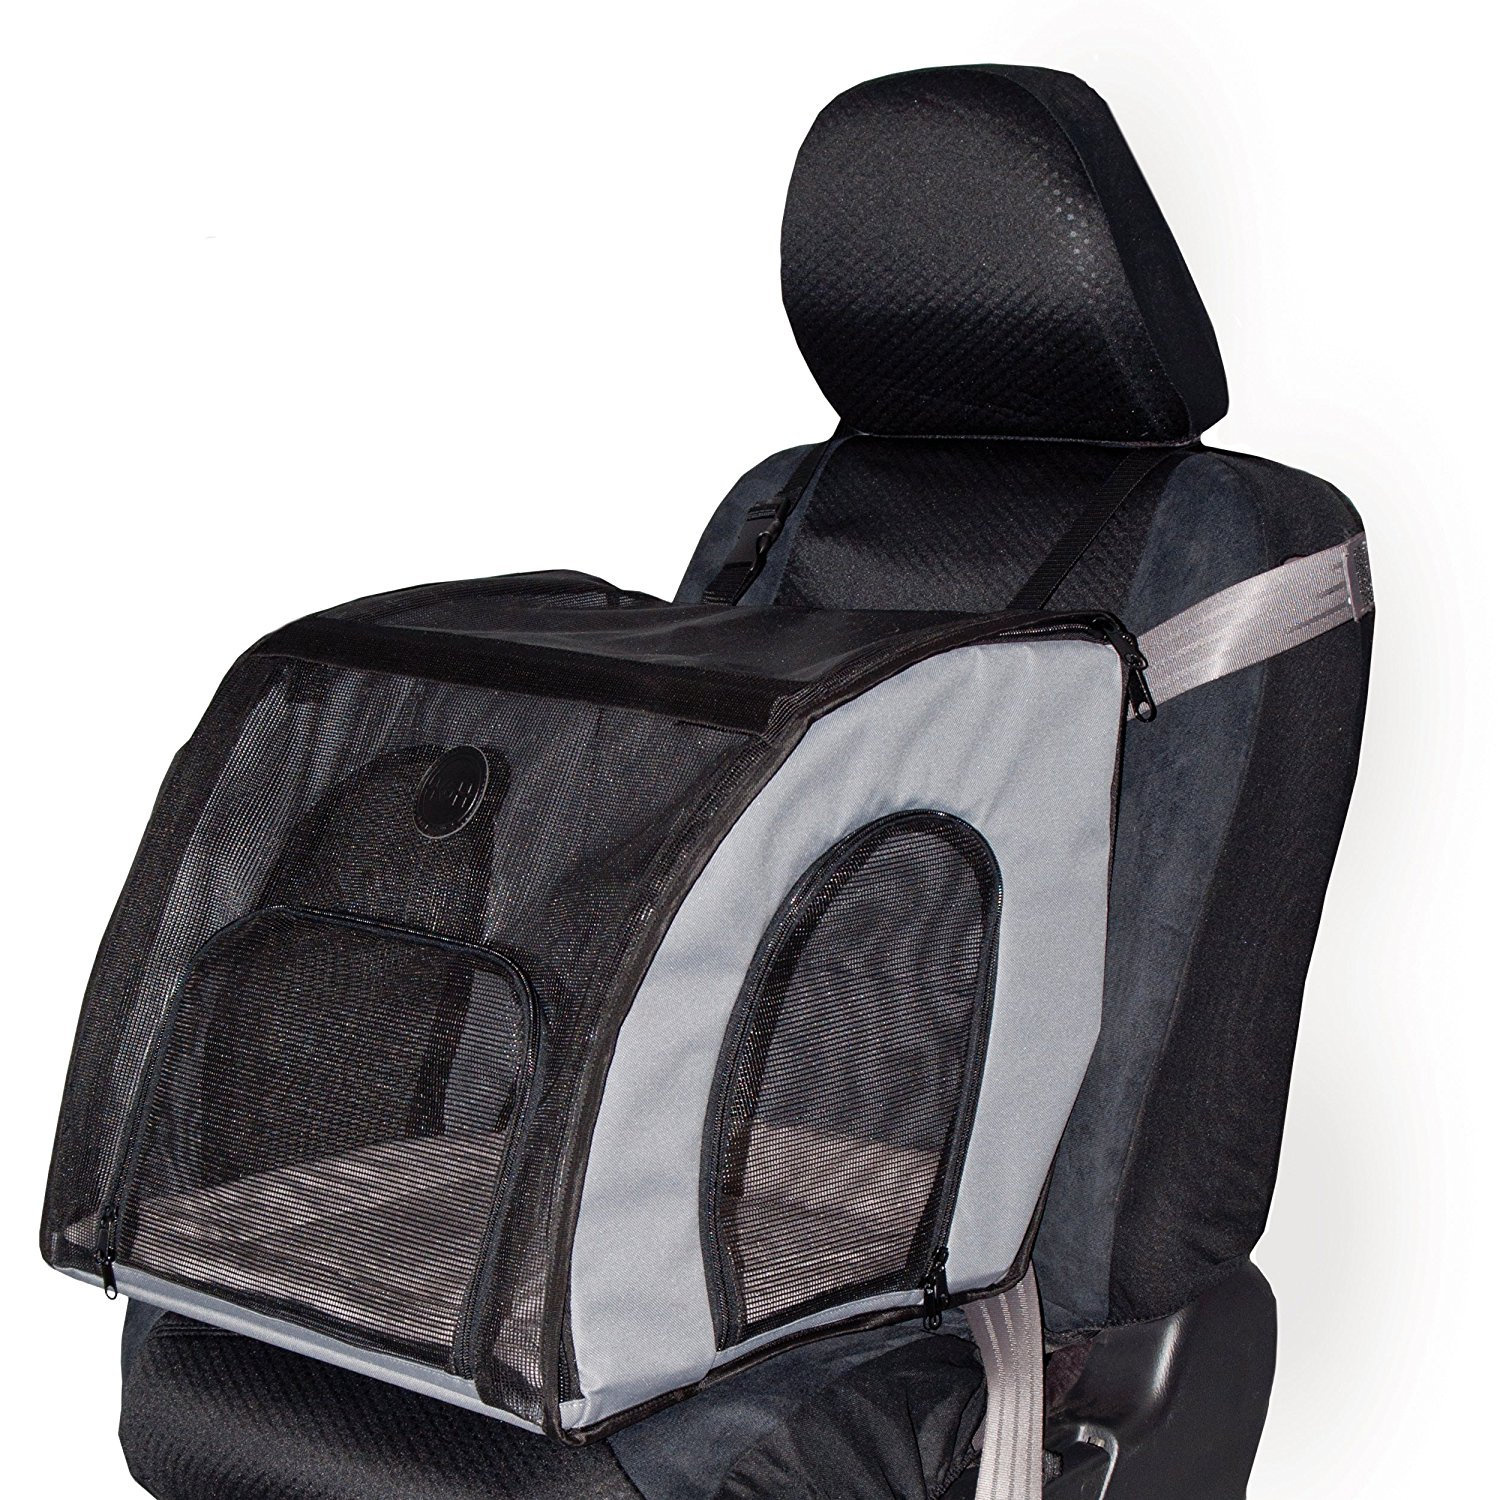 K&H Manufacturing Travel Safety Carrier - Gray